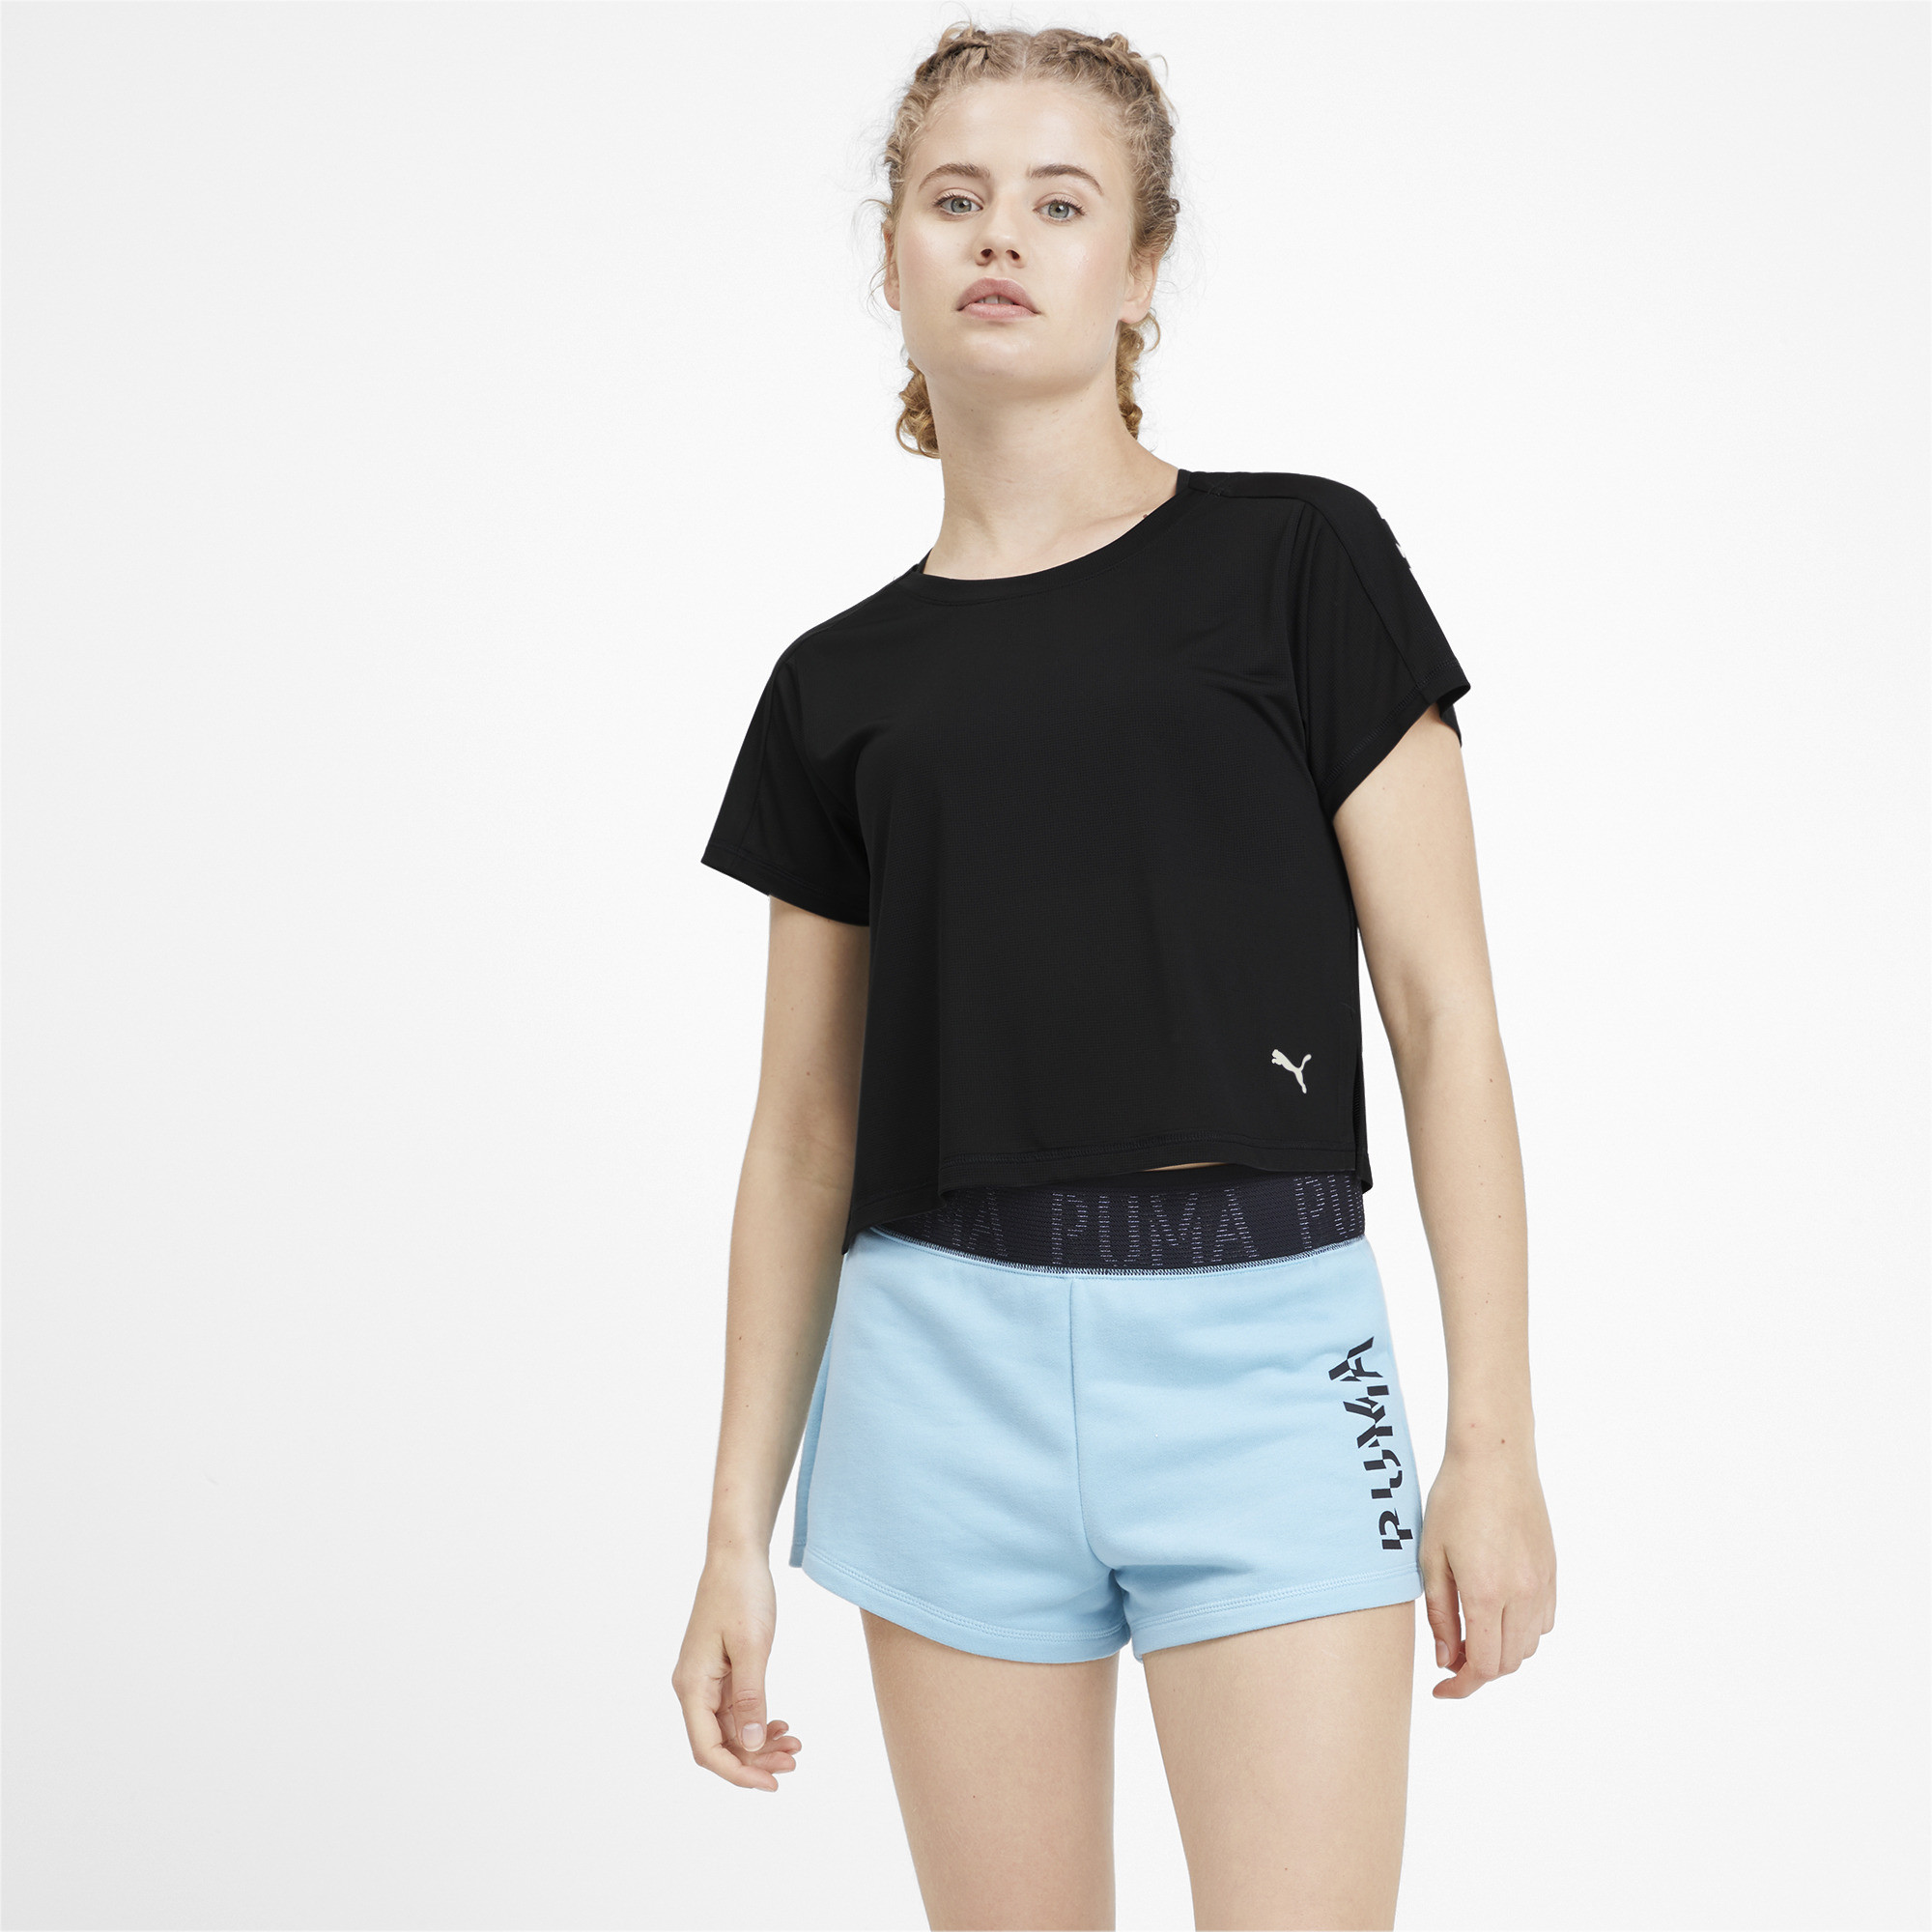 PUMA-Logo-Graphic-Women-039-s-Tee-Women-Tee-Training thumbnail 9